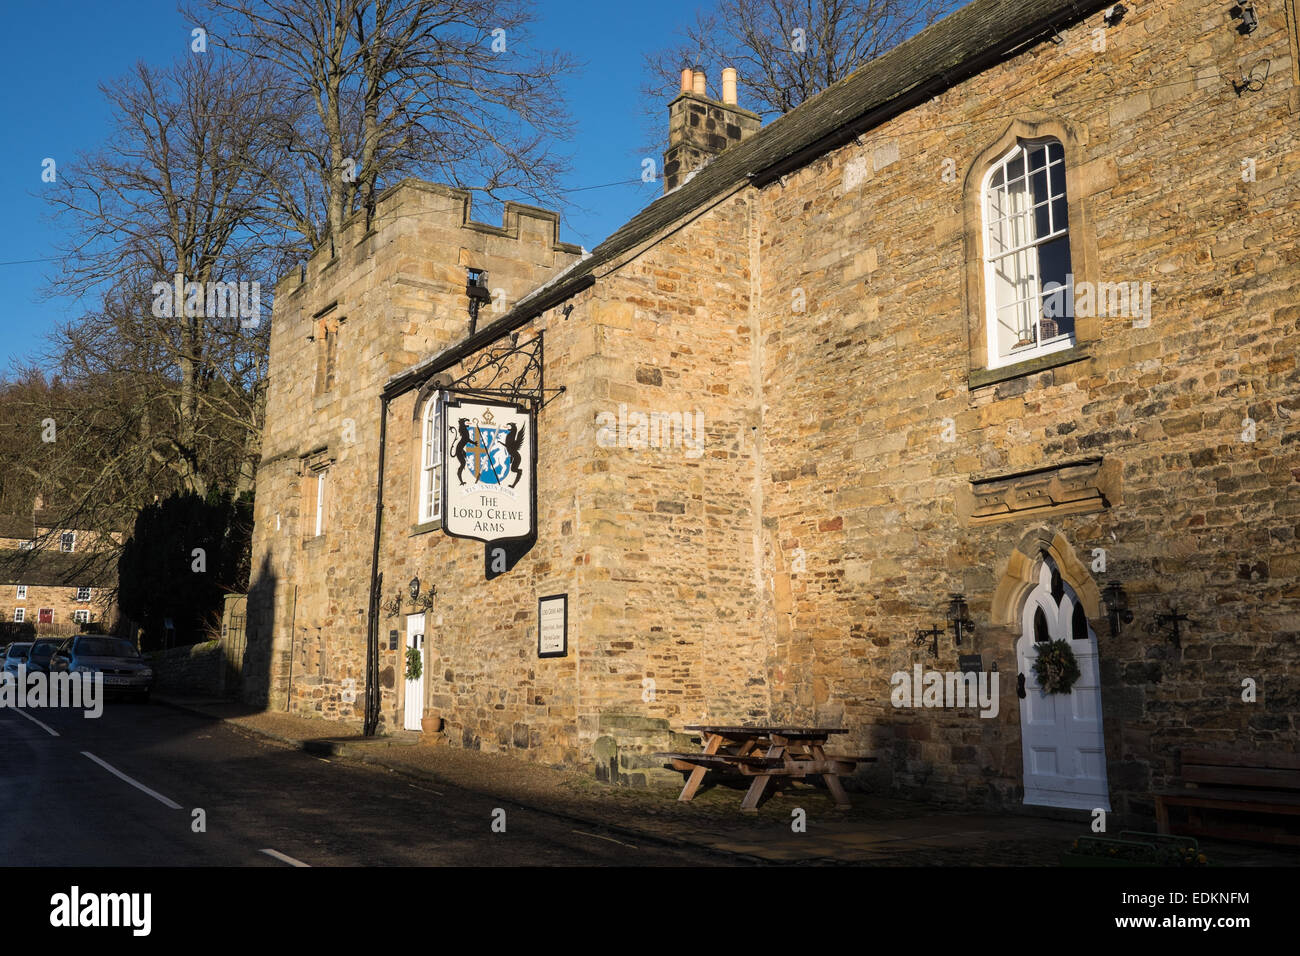 An exterior view of The Lord Crewe Arms Hotel, Pub and Restaurant in Blanchland, Northumberland, England. - Stock Image